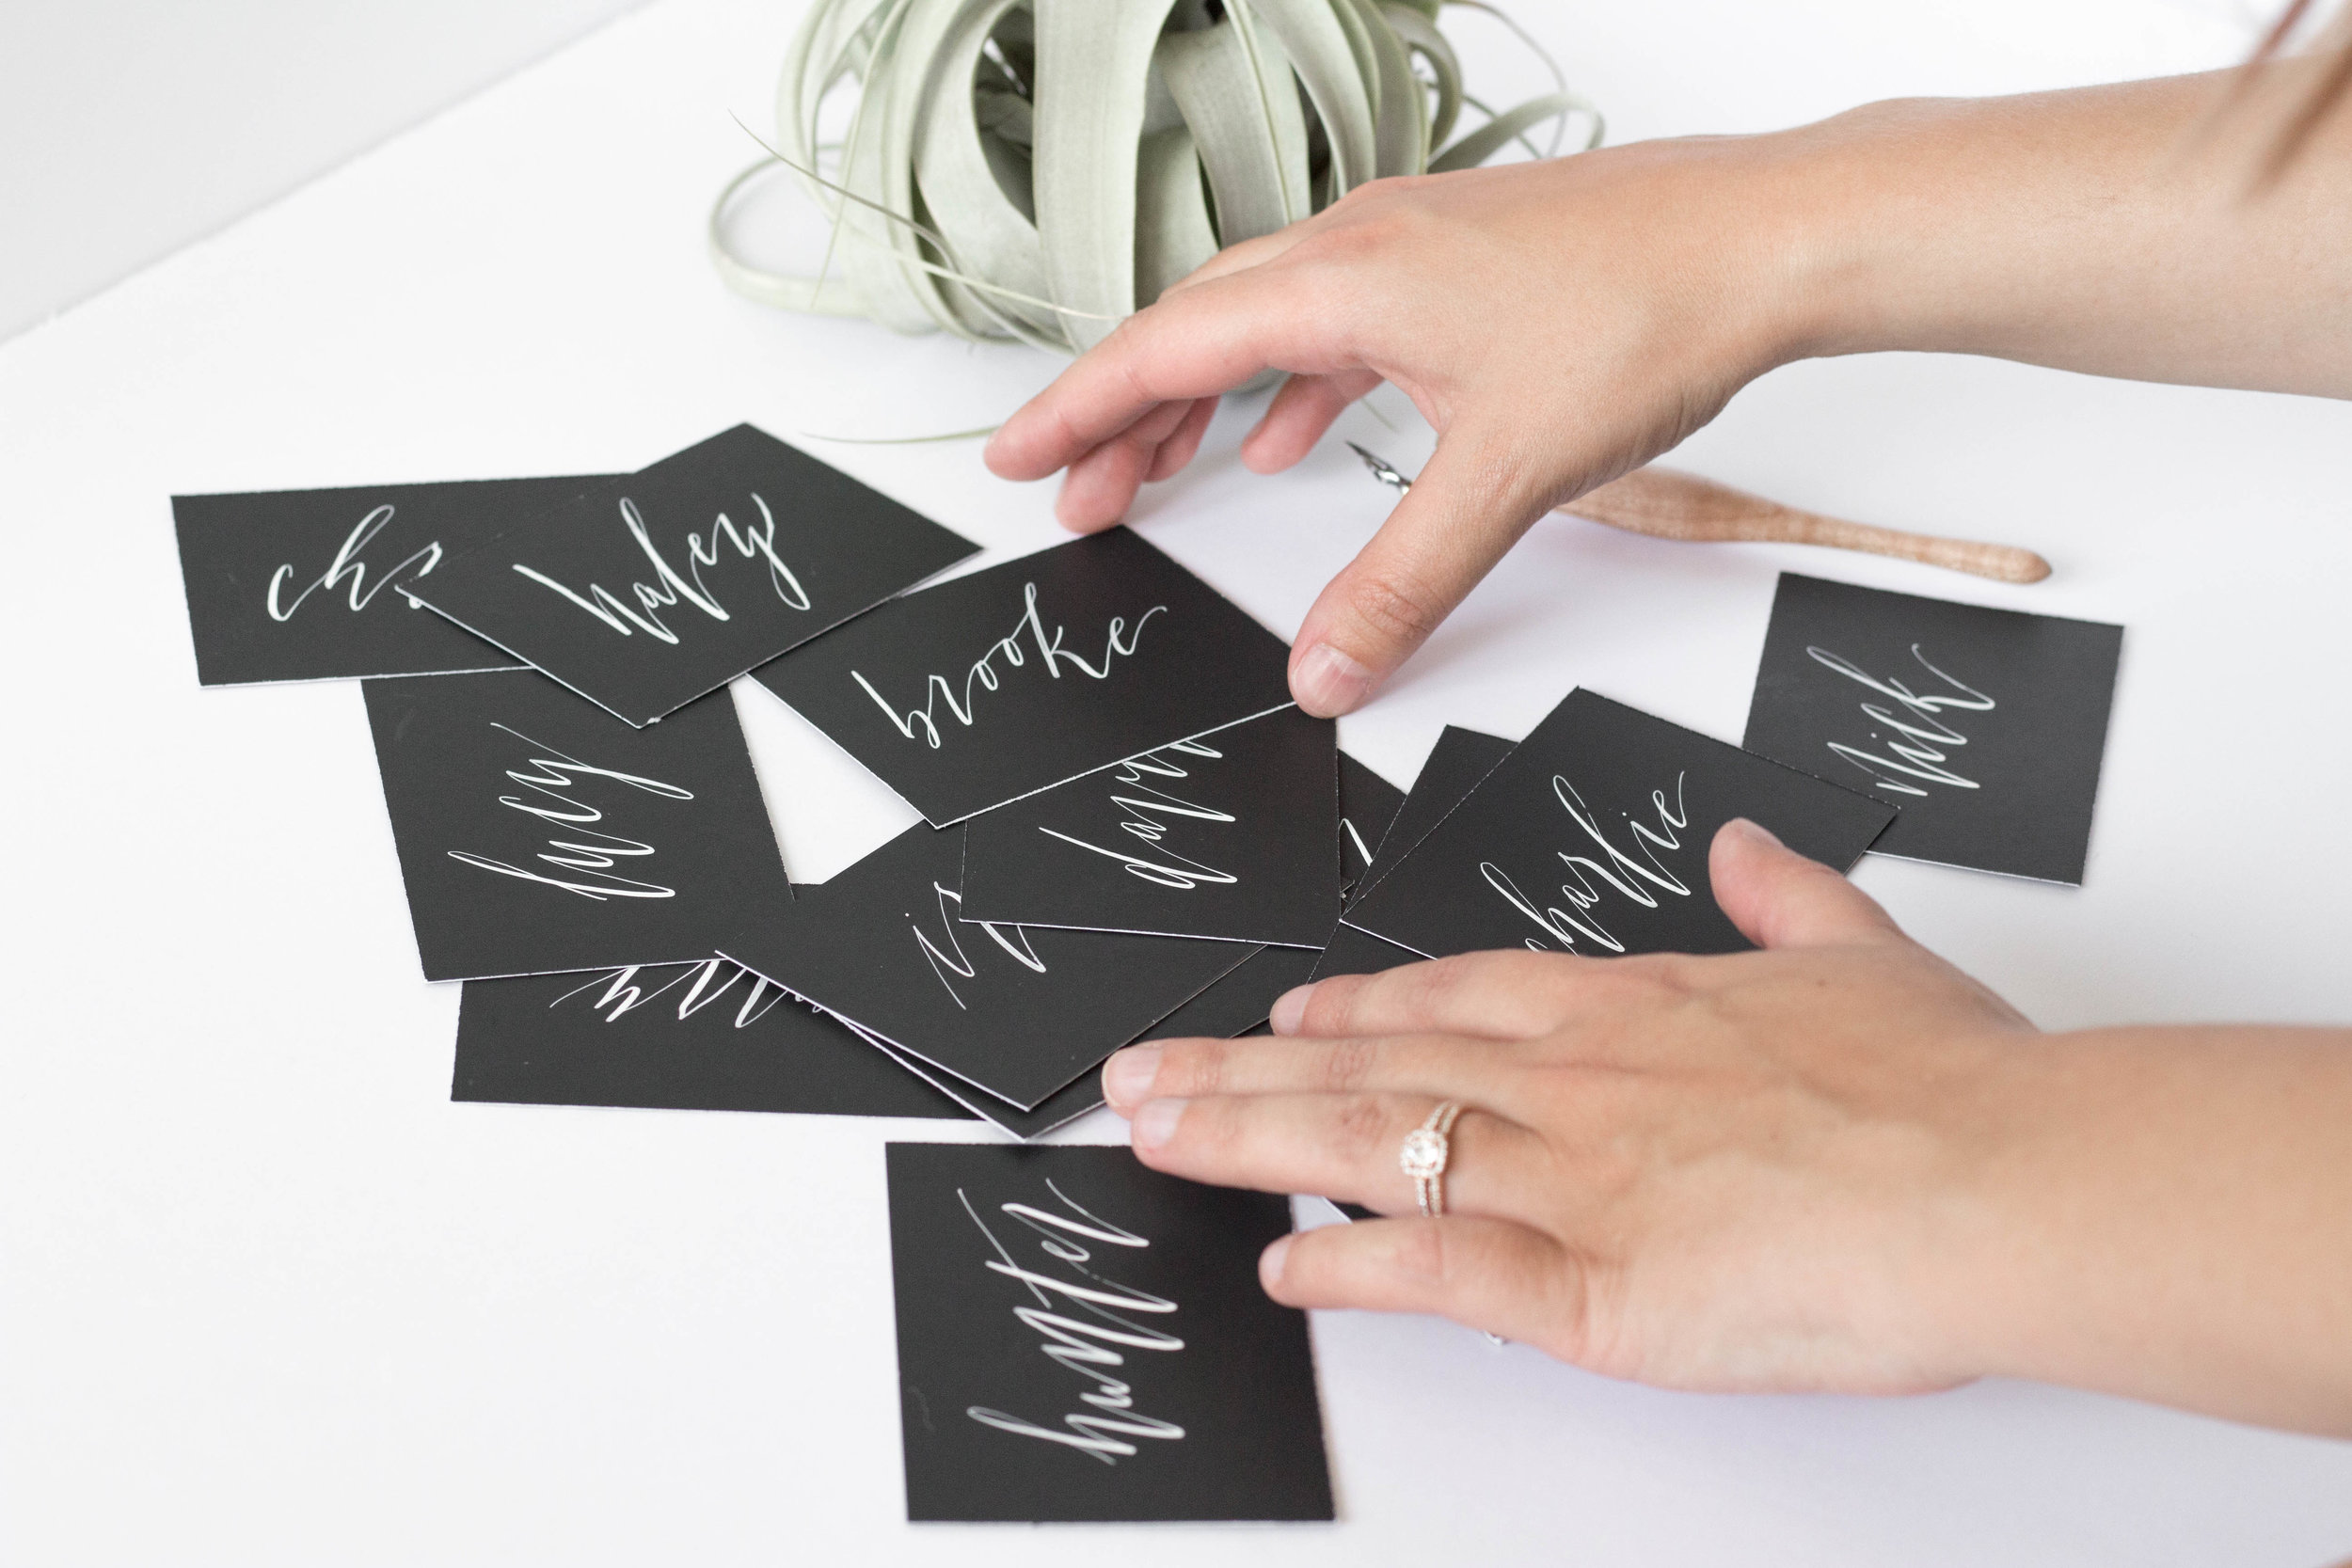 Black Place Cards with White Ink Names in Calligraphy - Minimalist Neutral Wedding - True North Paper Co.